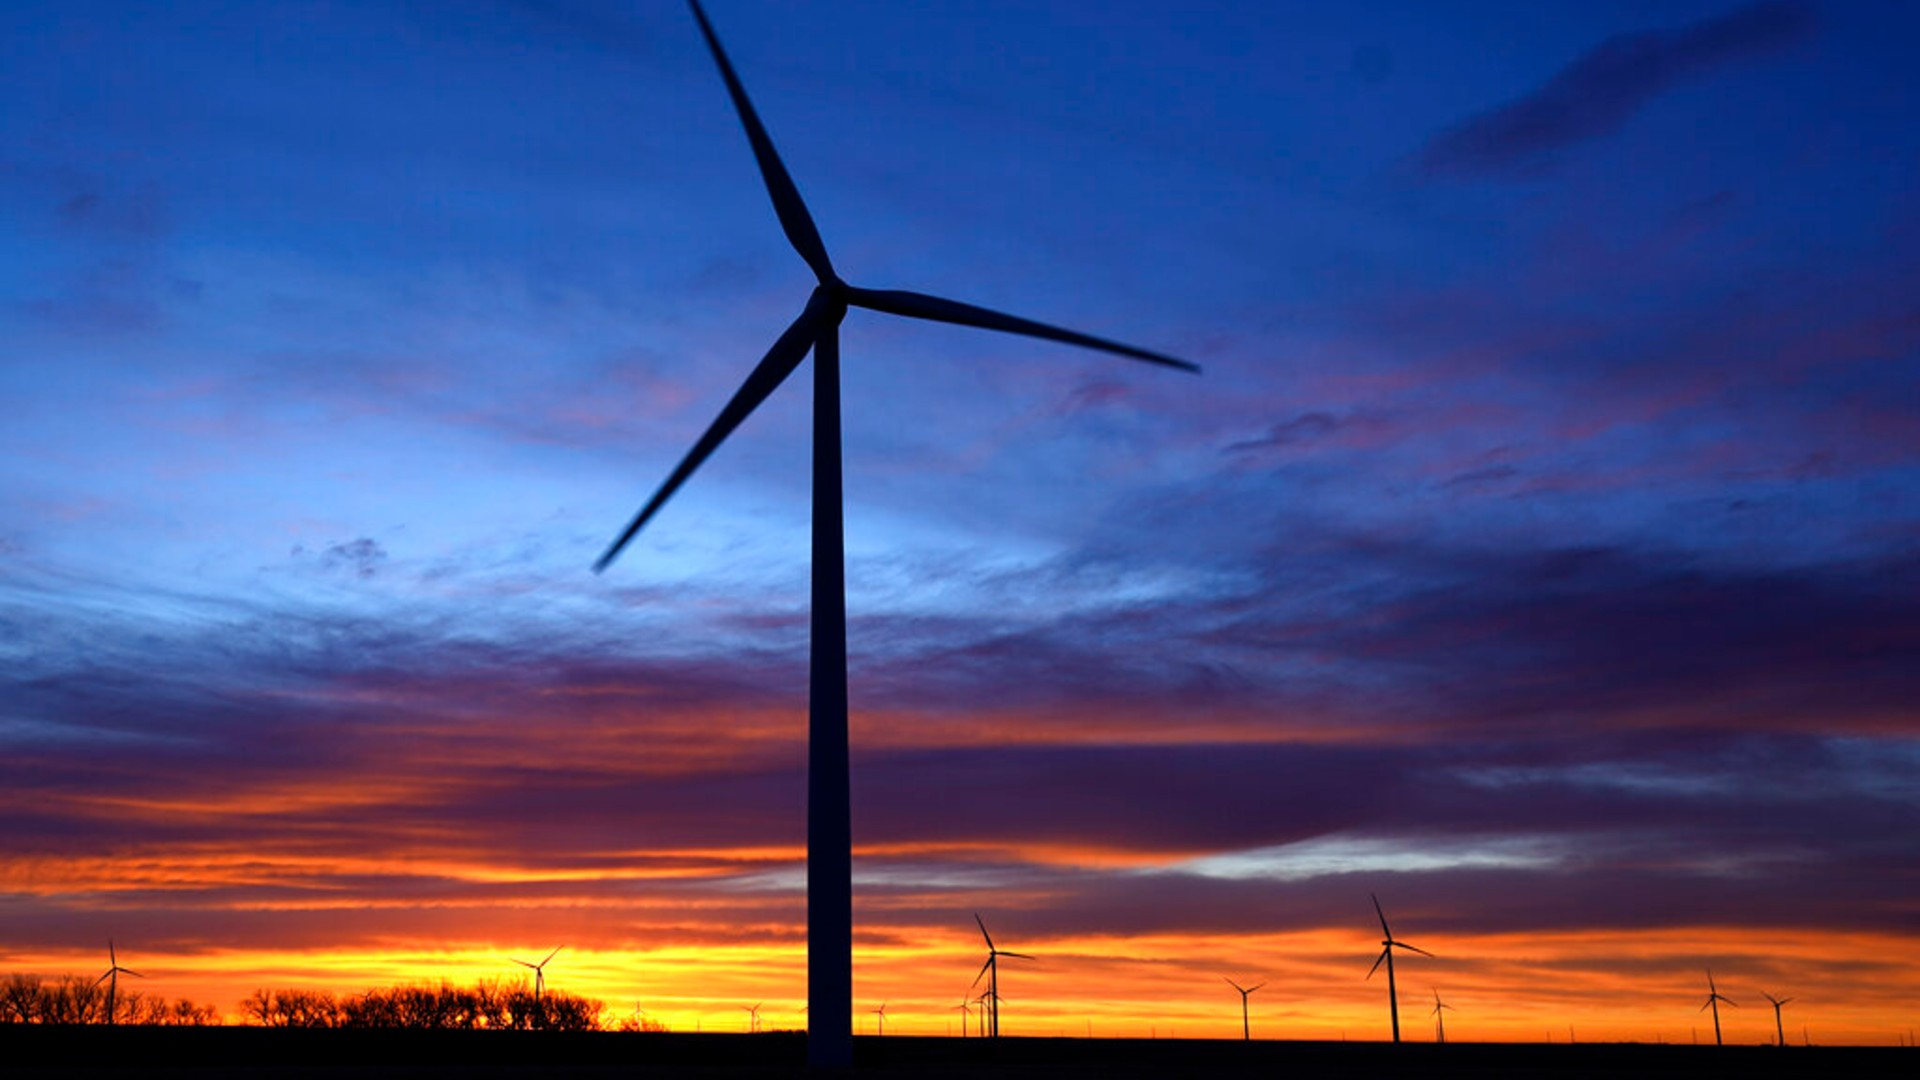 In this Jan. 13, 2021, file photo, wind turbines are silhouetted against the sky at dawn near Spearville, Kan. (AP Photo/Charlie Riedel, File)